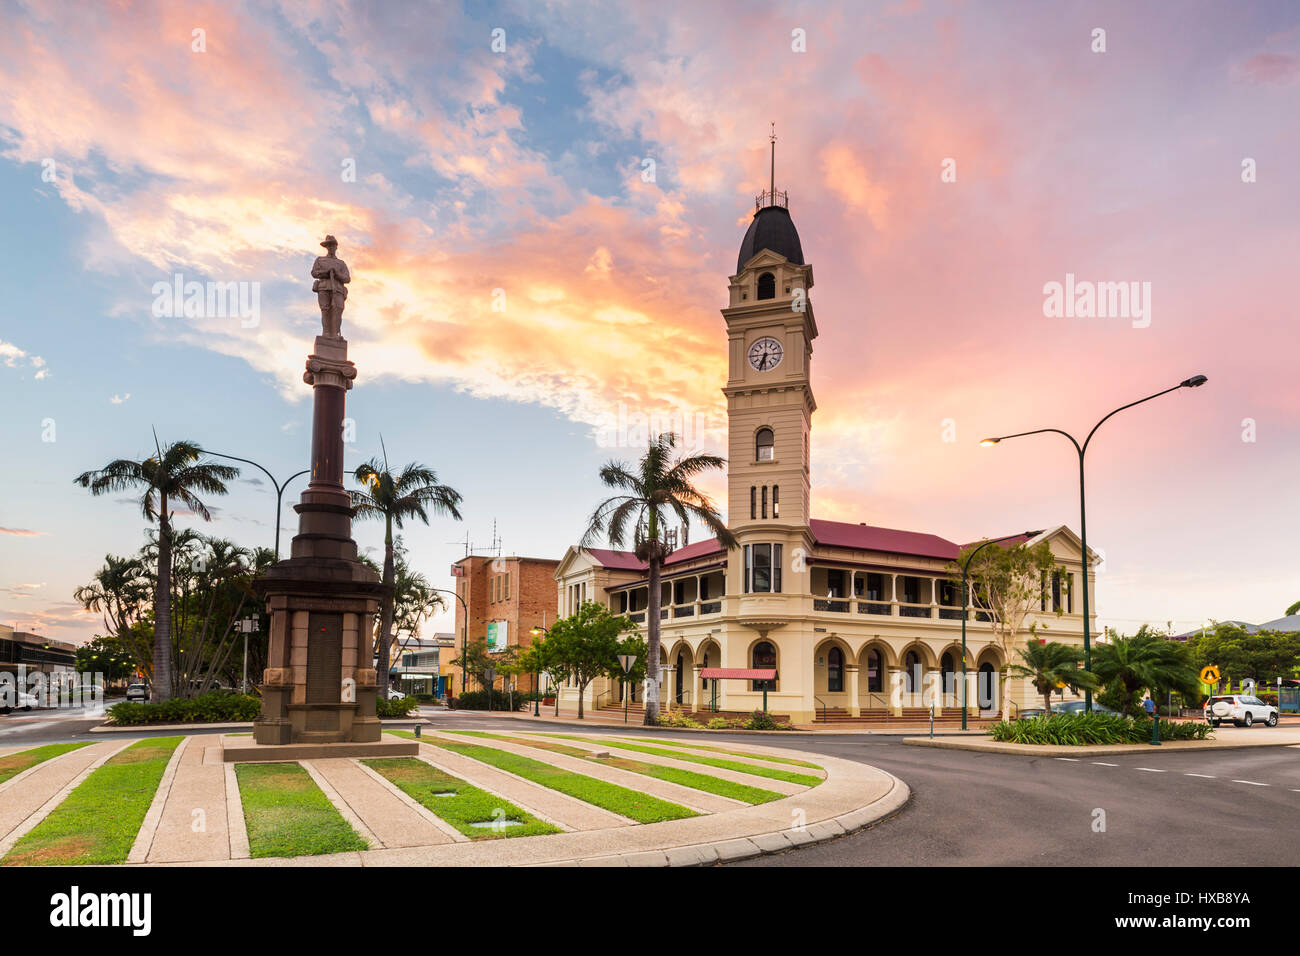 Sunset view of the Bundaberg Post Office and clock tower.  Bundaberg, Queensland, Australia - Stock Image